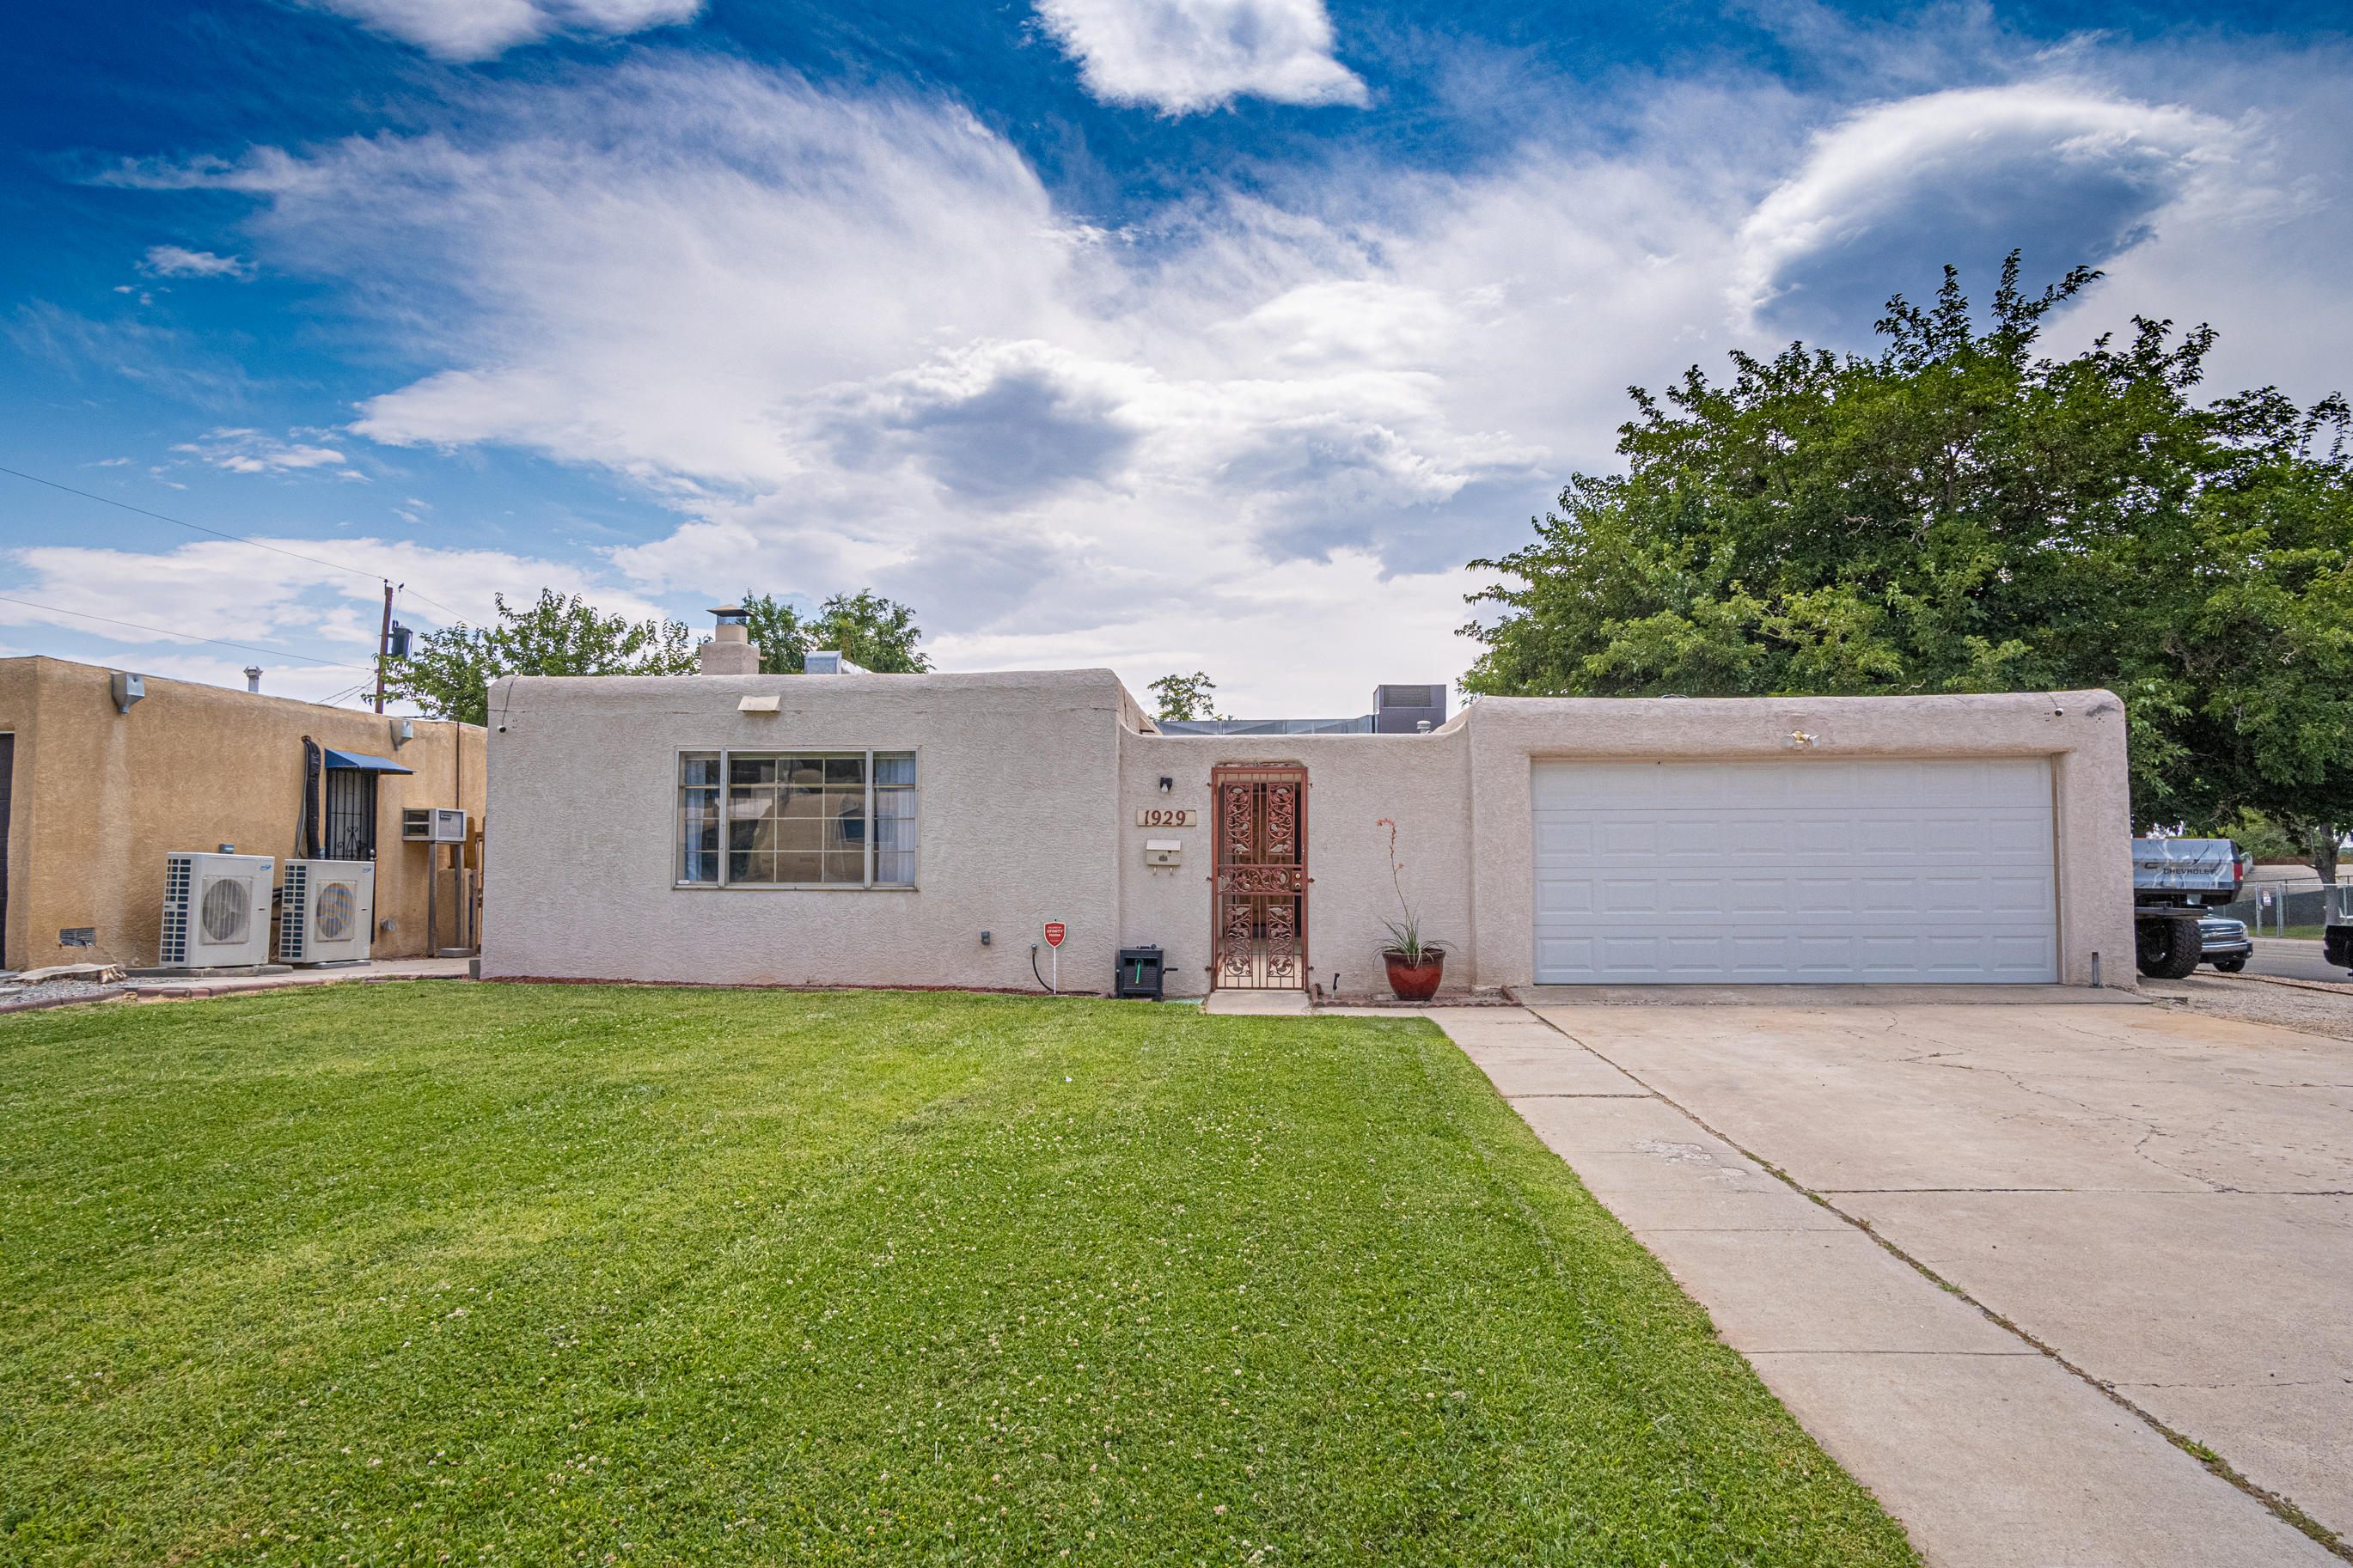 Beautifully remodeled single story home in the established Snow Heights Neighborhood!  This 1961SF Home has 2 large living areas, 3 bedrooms, 2 baths and 2 car garage and has many recent updates!  Master bath was remodeled in 2021, New Ref AC 2020 with 10 year warranty, New security camera system with 8 cameras stays, New Kitchen Appliances 2021, FP & Wood burning stove, beautiful laminate flooring and ceramic tile.  NO CARPET!! Kitchen has beautiful Cabinets, Concrete counters, Tile back splash! The front courtyard has a nice security gate! You will love the shady backyard and large covered patio!! Front and back yards are nicely landscaped with lawns and shade trees!  Two large storage sheds in the backyard stay! There is a side area for parking an RV, etc!!